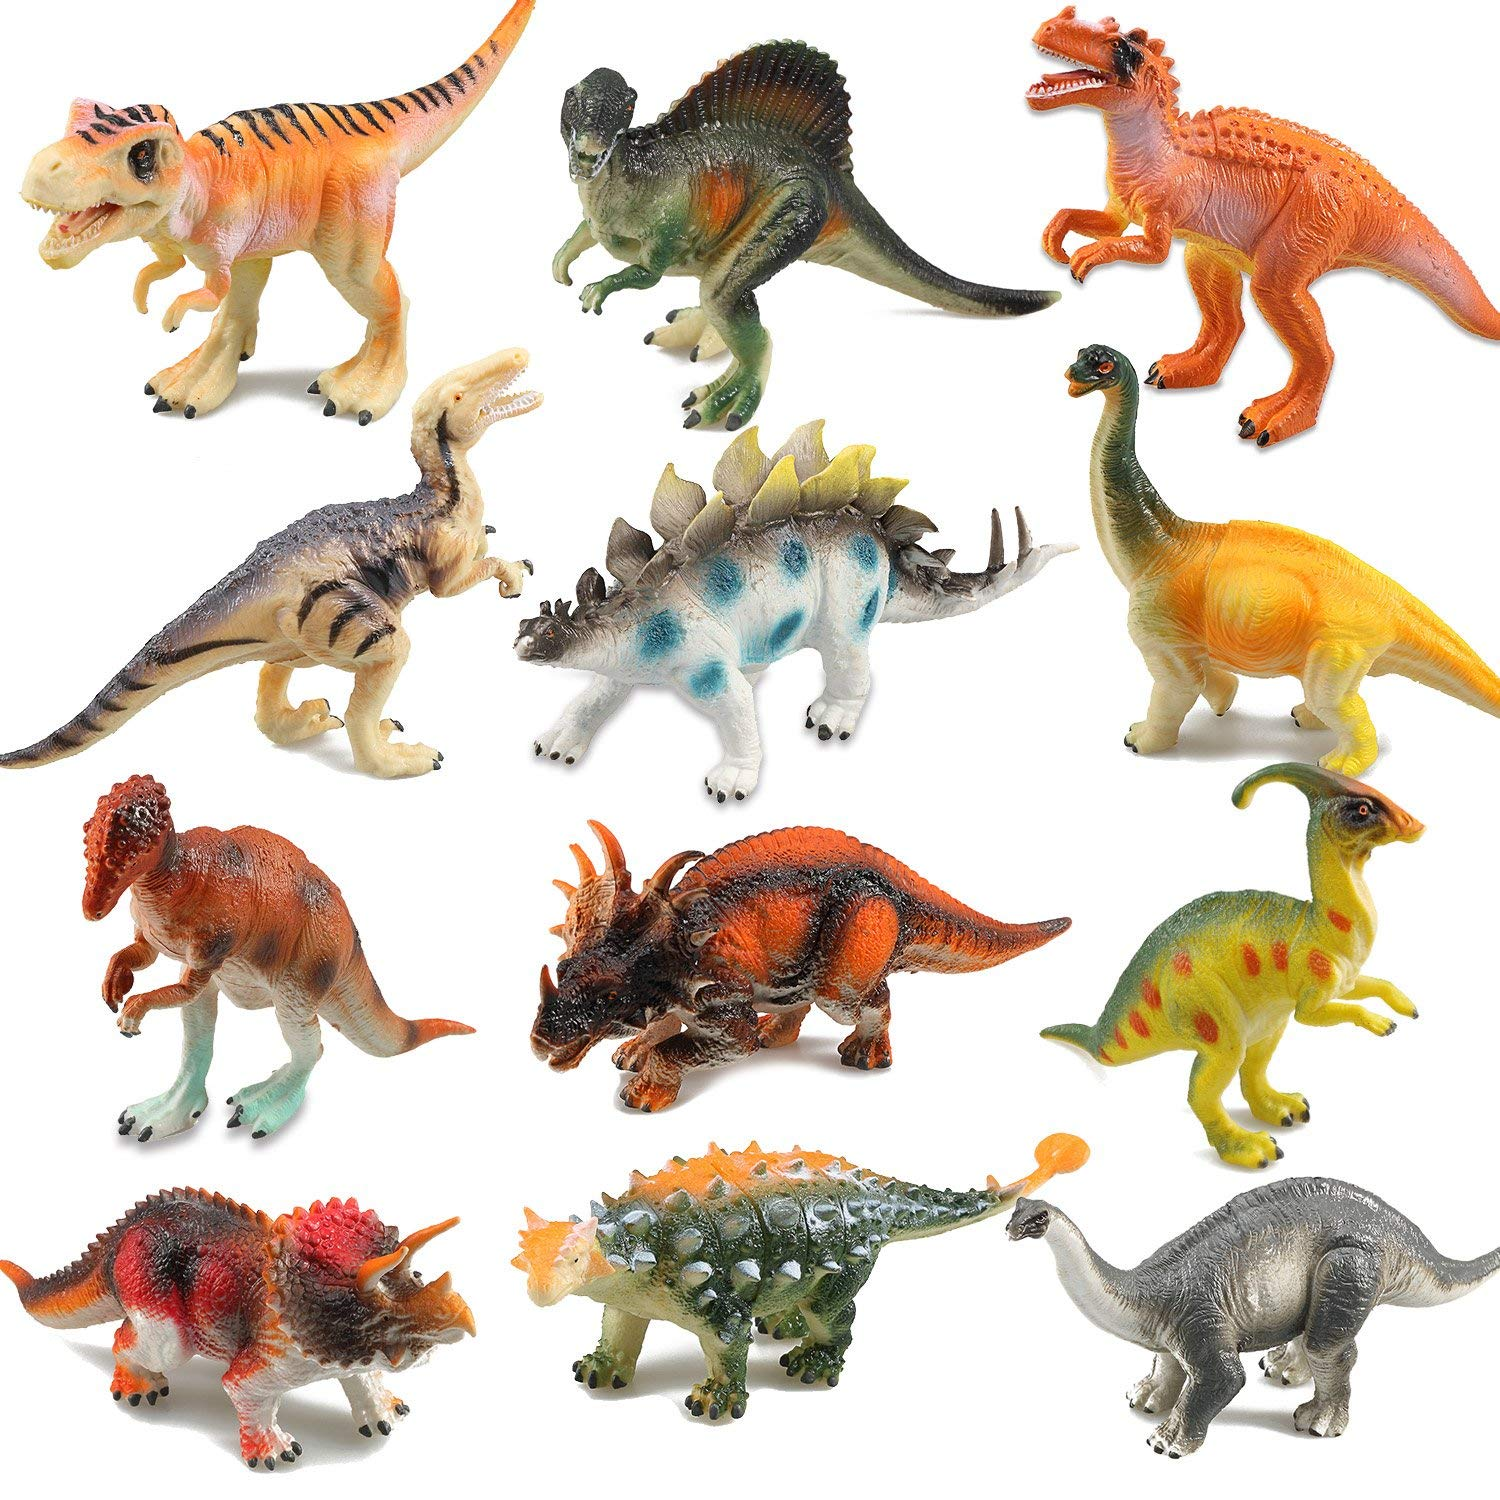 Set 12pcs 8pcs Assorted Vivid Dinosaurs Model Kids Toys Plastic Dinosaur Figures